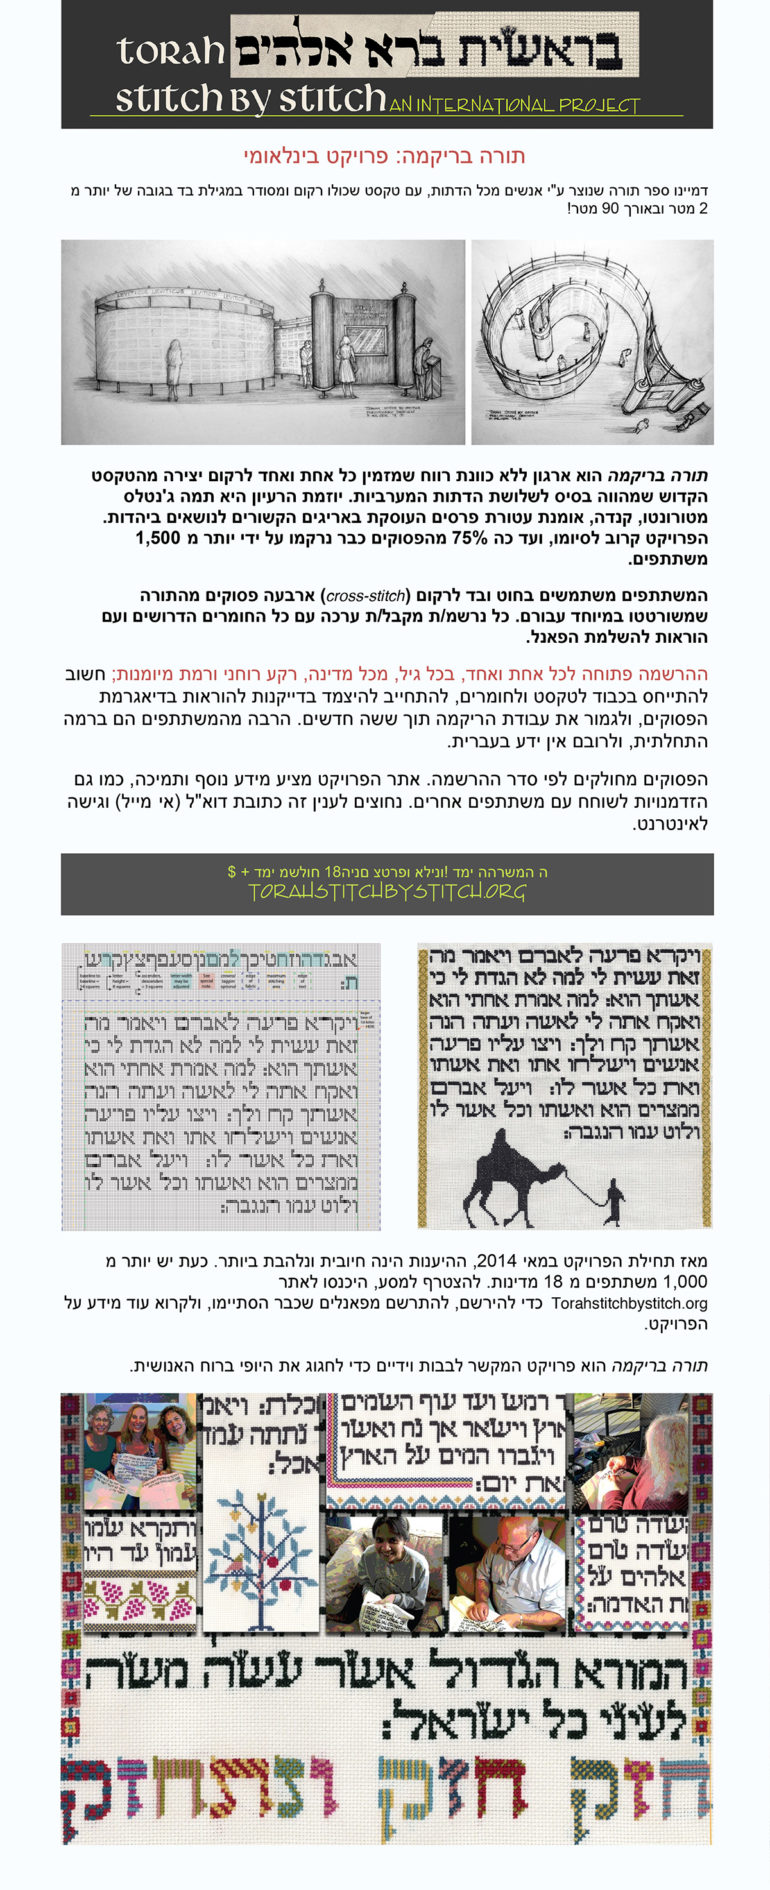 project overview Hebrew (1).docx